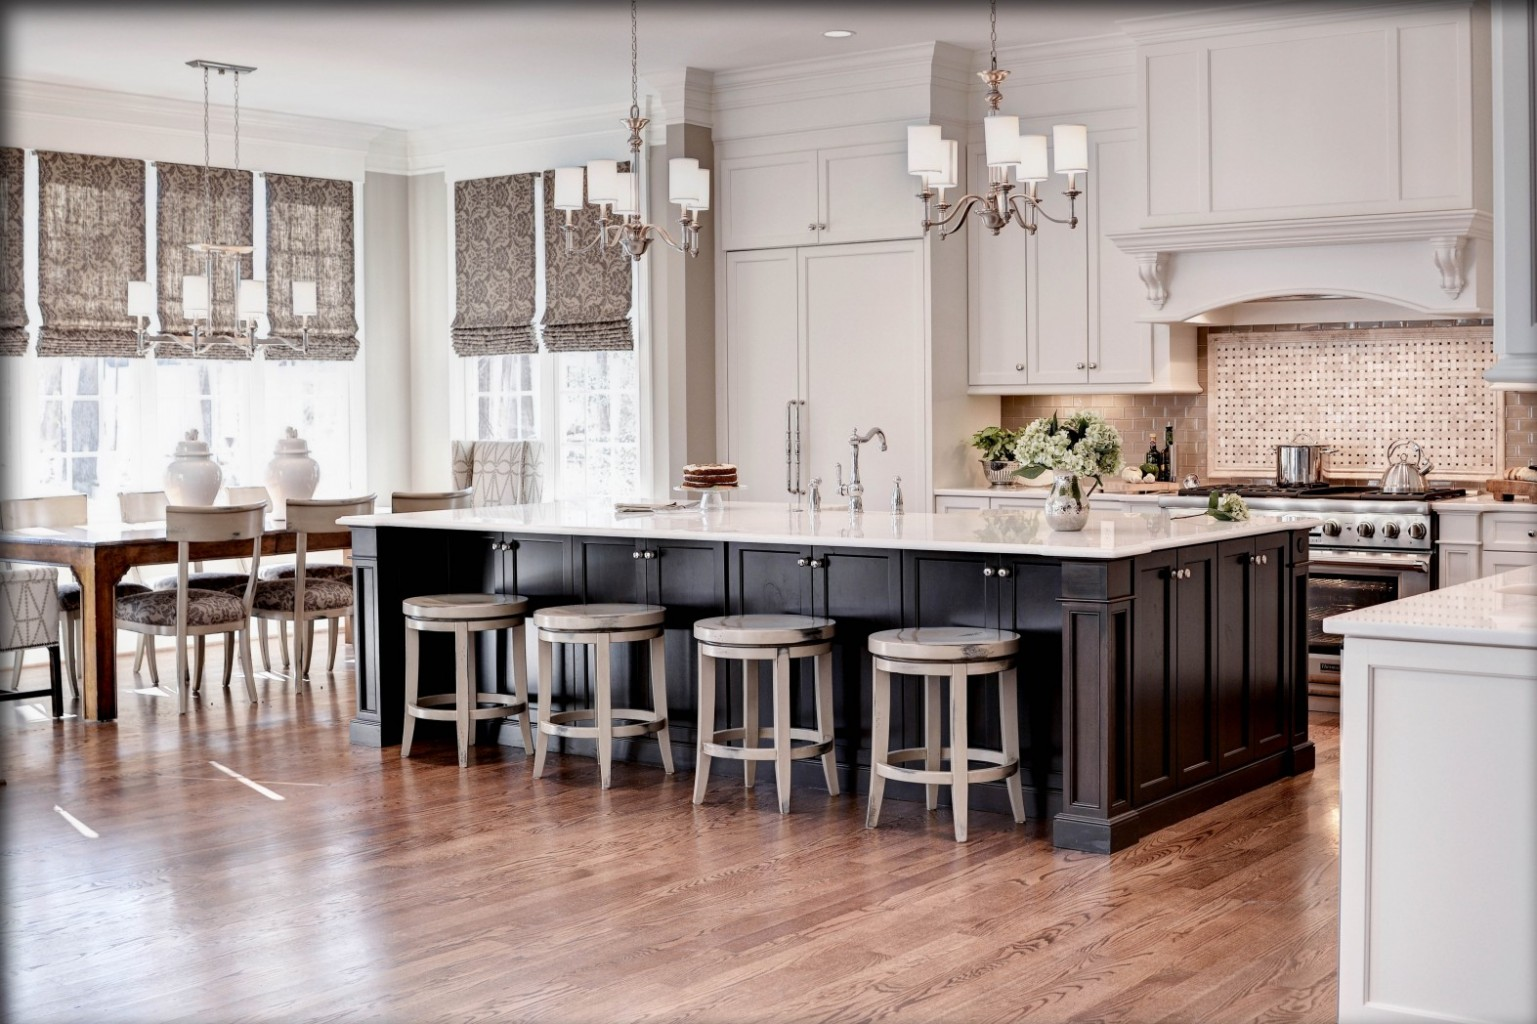 award winning kitchen design award winning kitchen